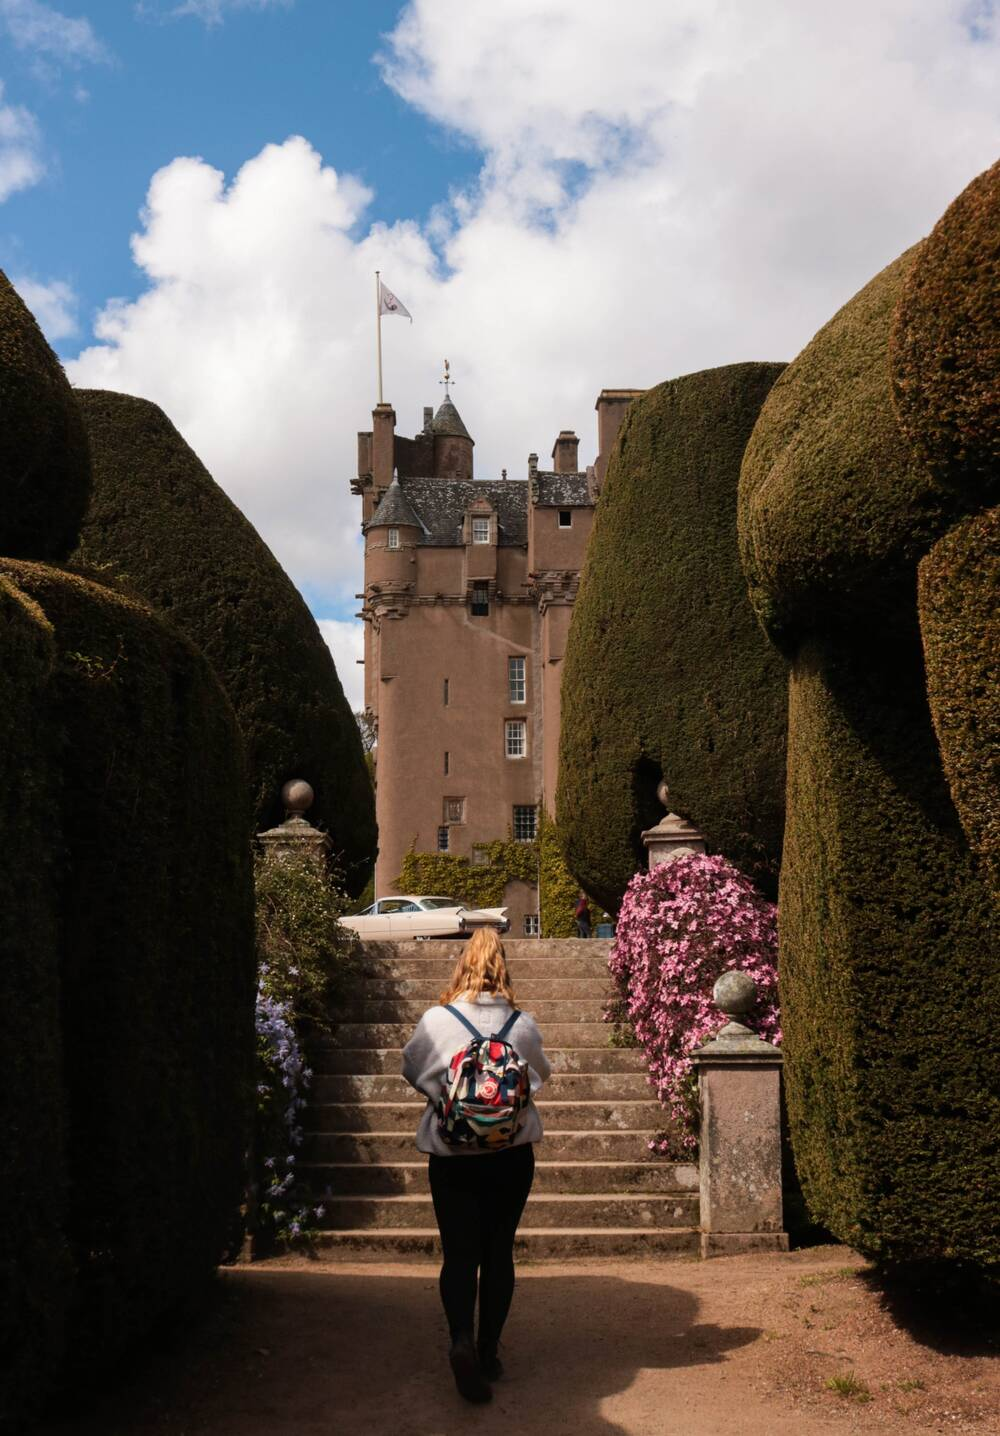 A lady stands with her back to the camera in front of some steps leading to Crathes Castle.